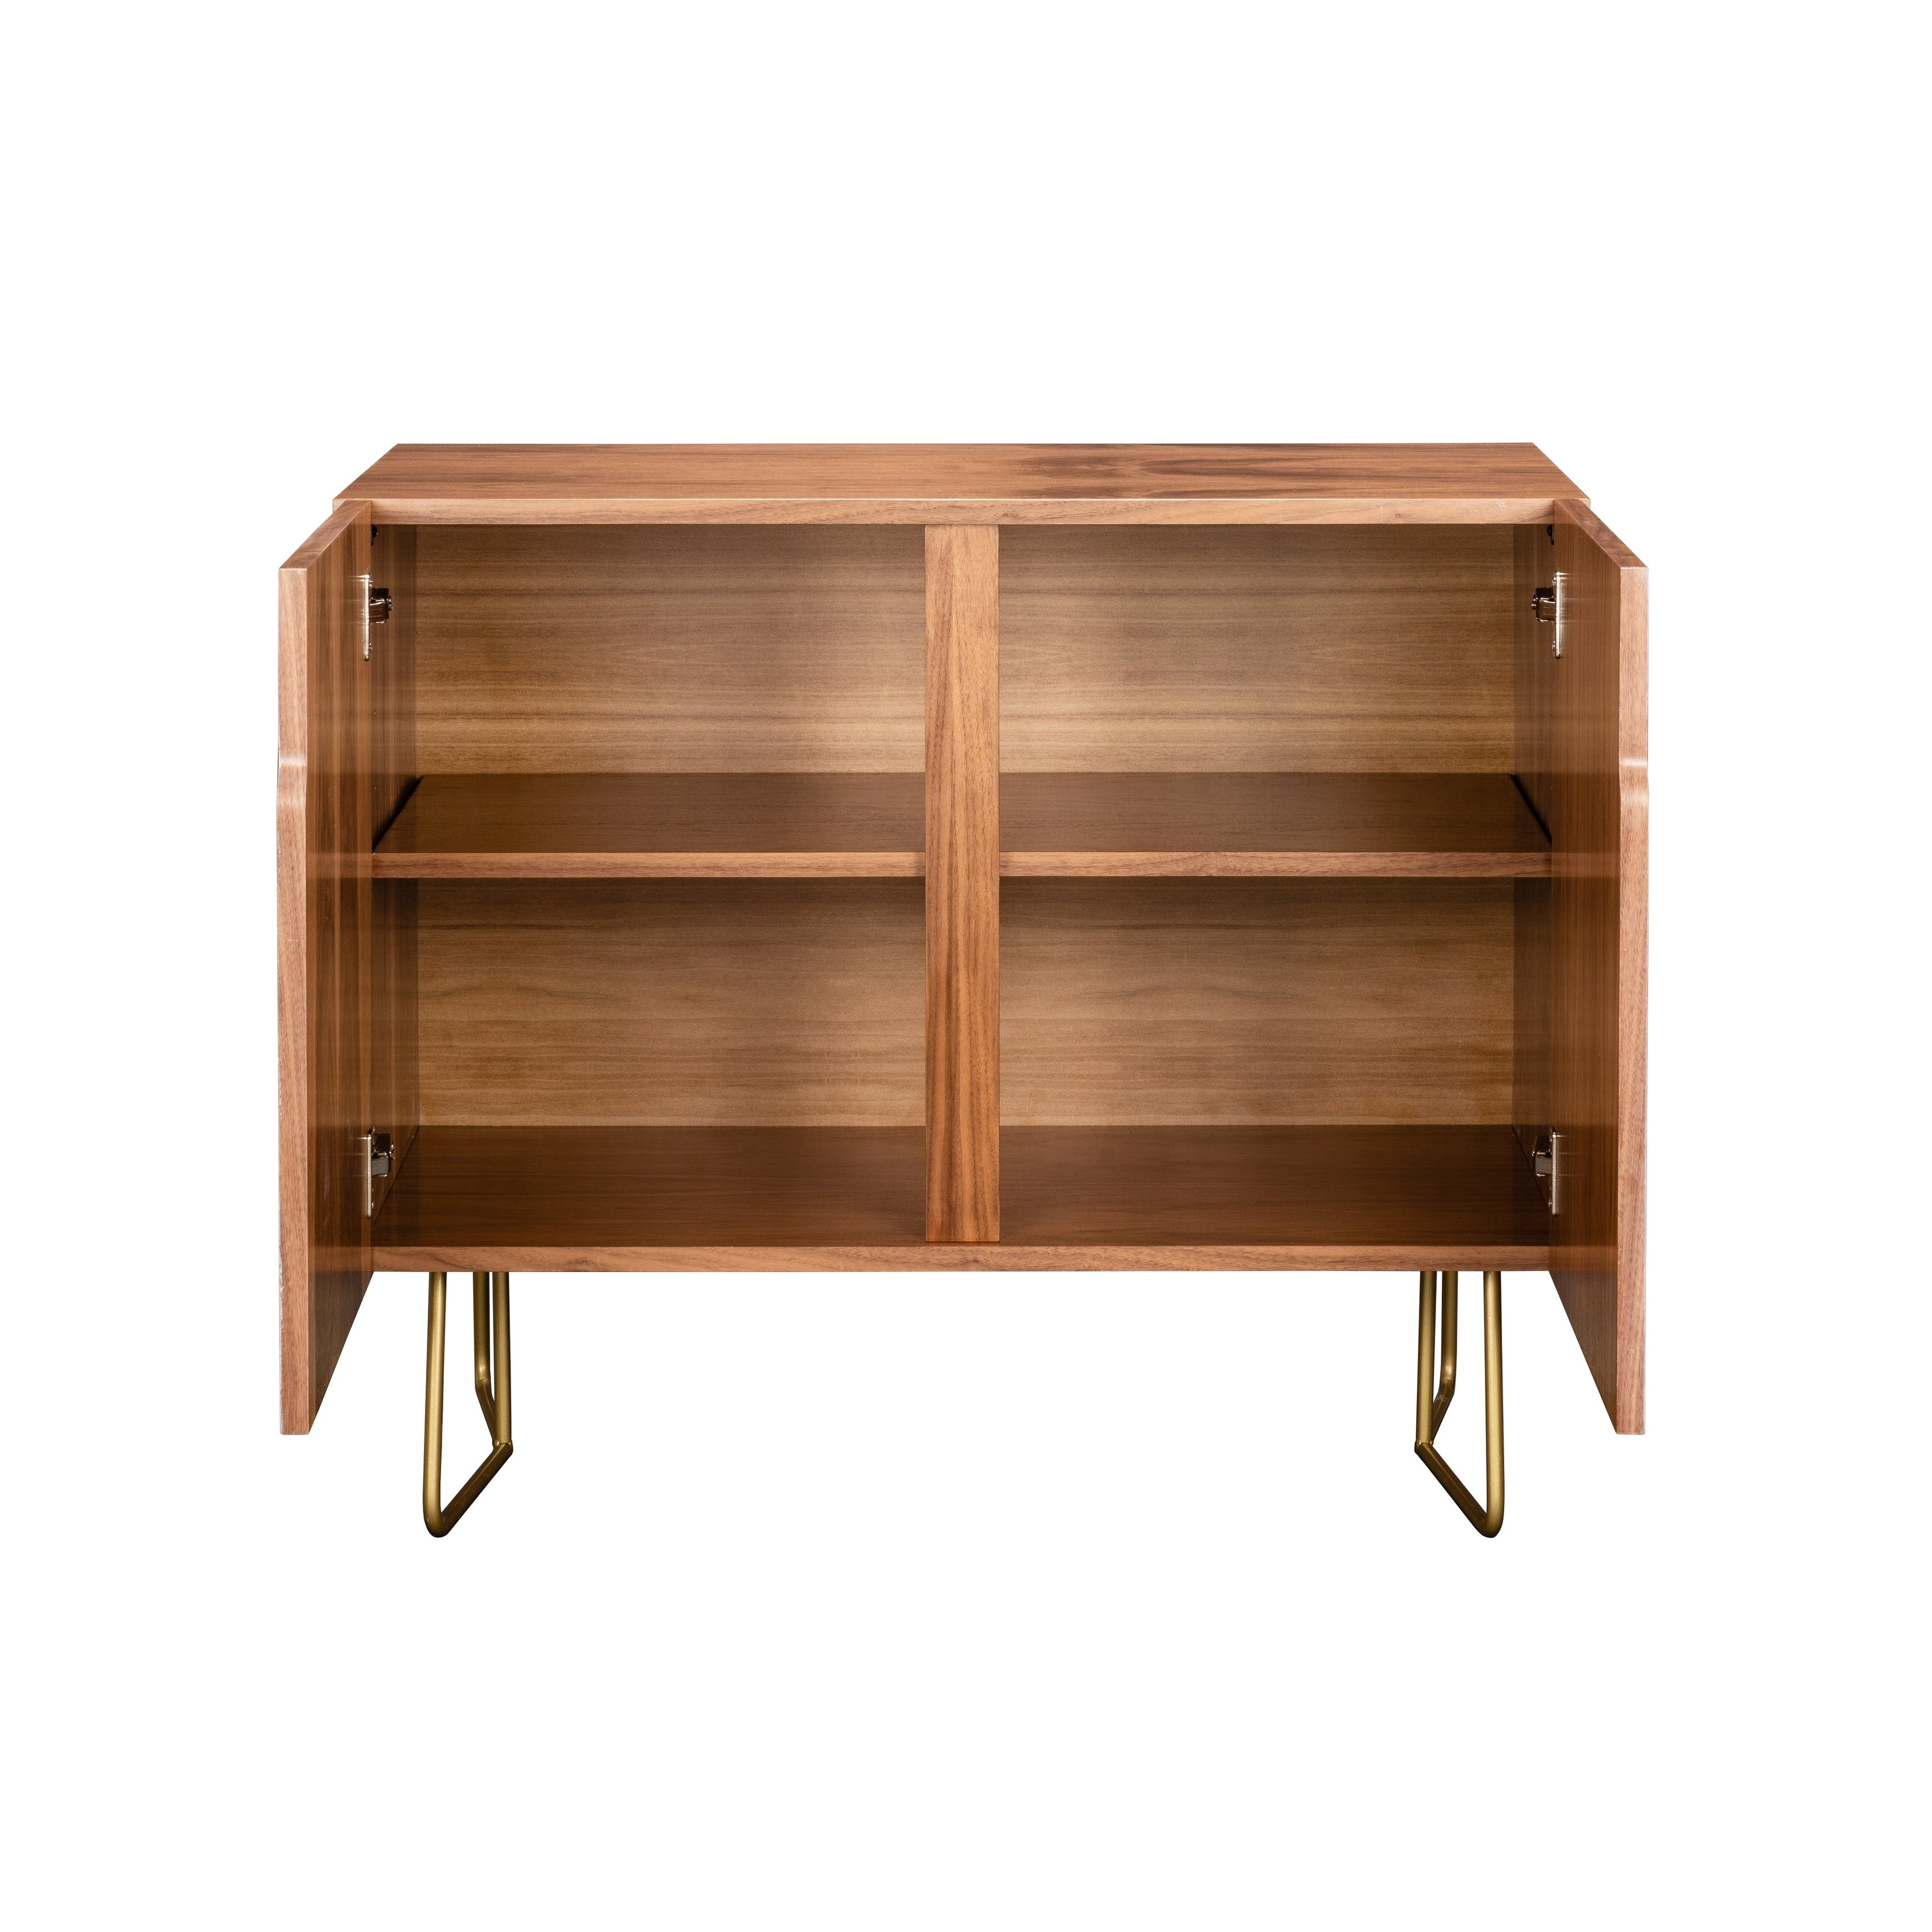 Deny Designs Beach Stripes Credenza (Birch Or Walnut, 2 Leg Options) Intended For Beach Stripes Credenzas (View 6 of 20)